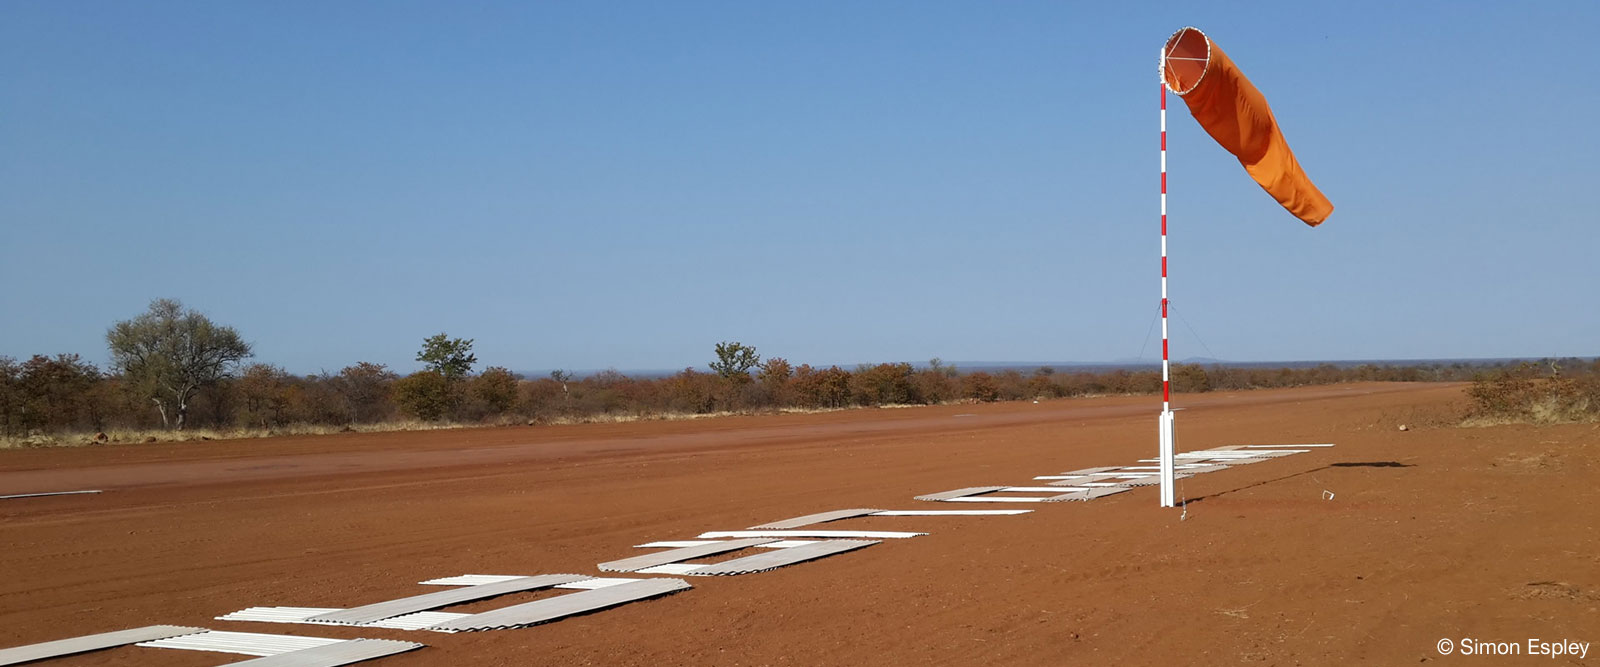 Private International Airstrip - Limpopo-Lipadi Private Game Reserve, Botswana